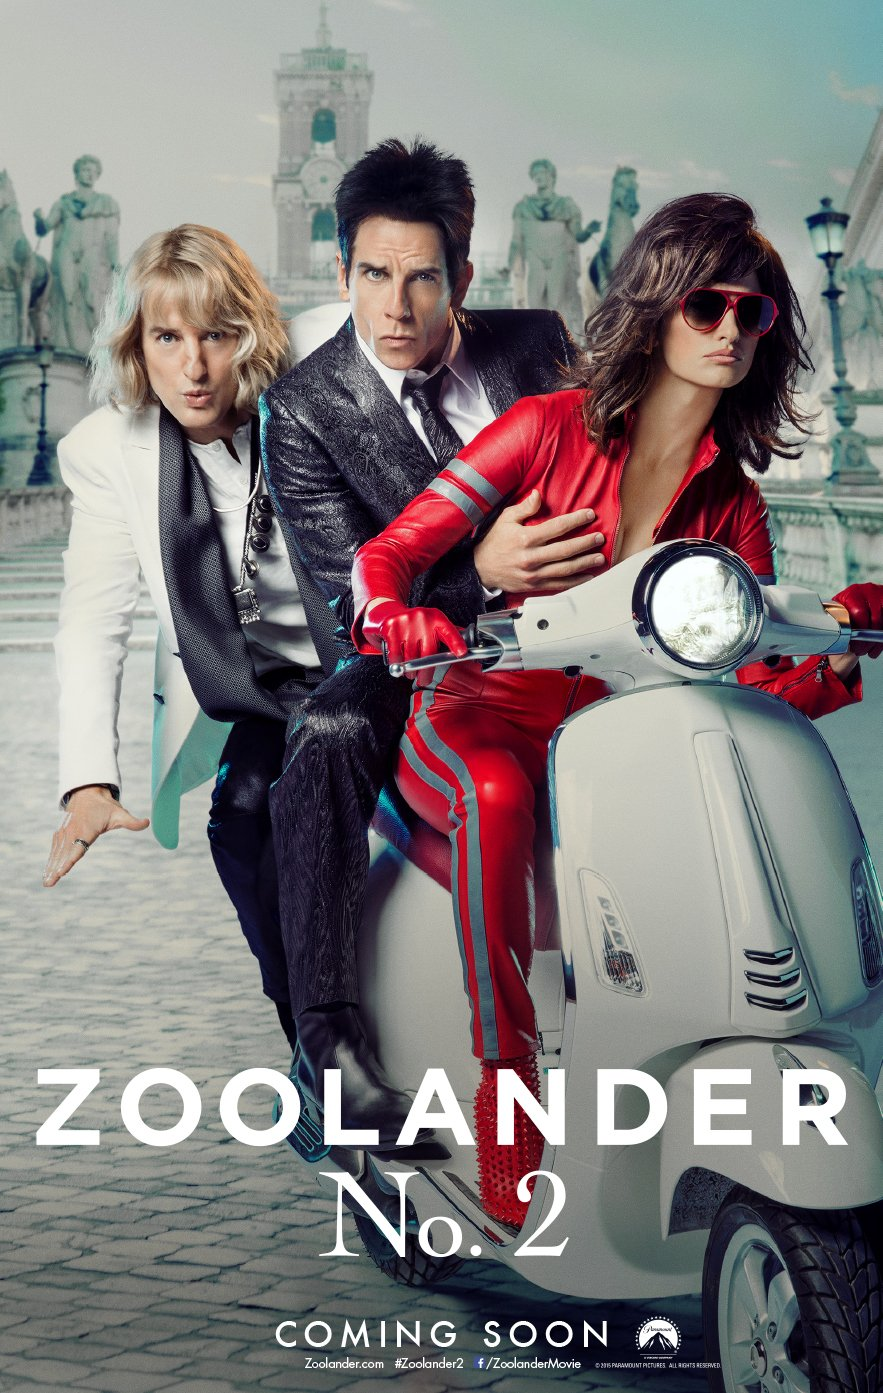 Zoolander 2 Scooter poster